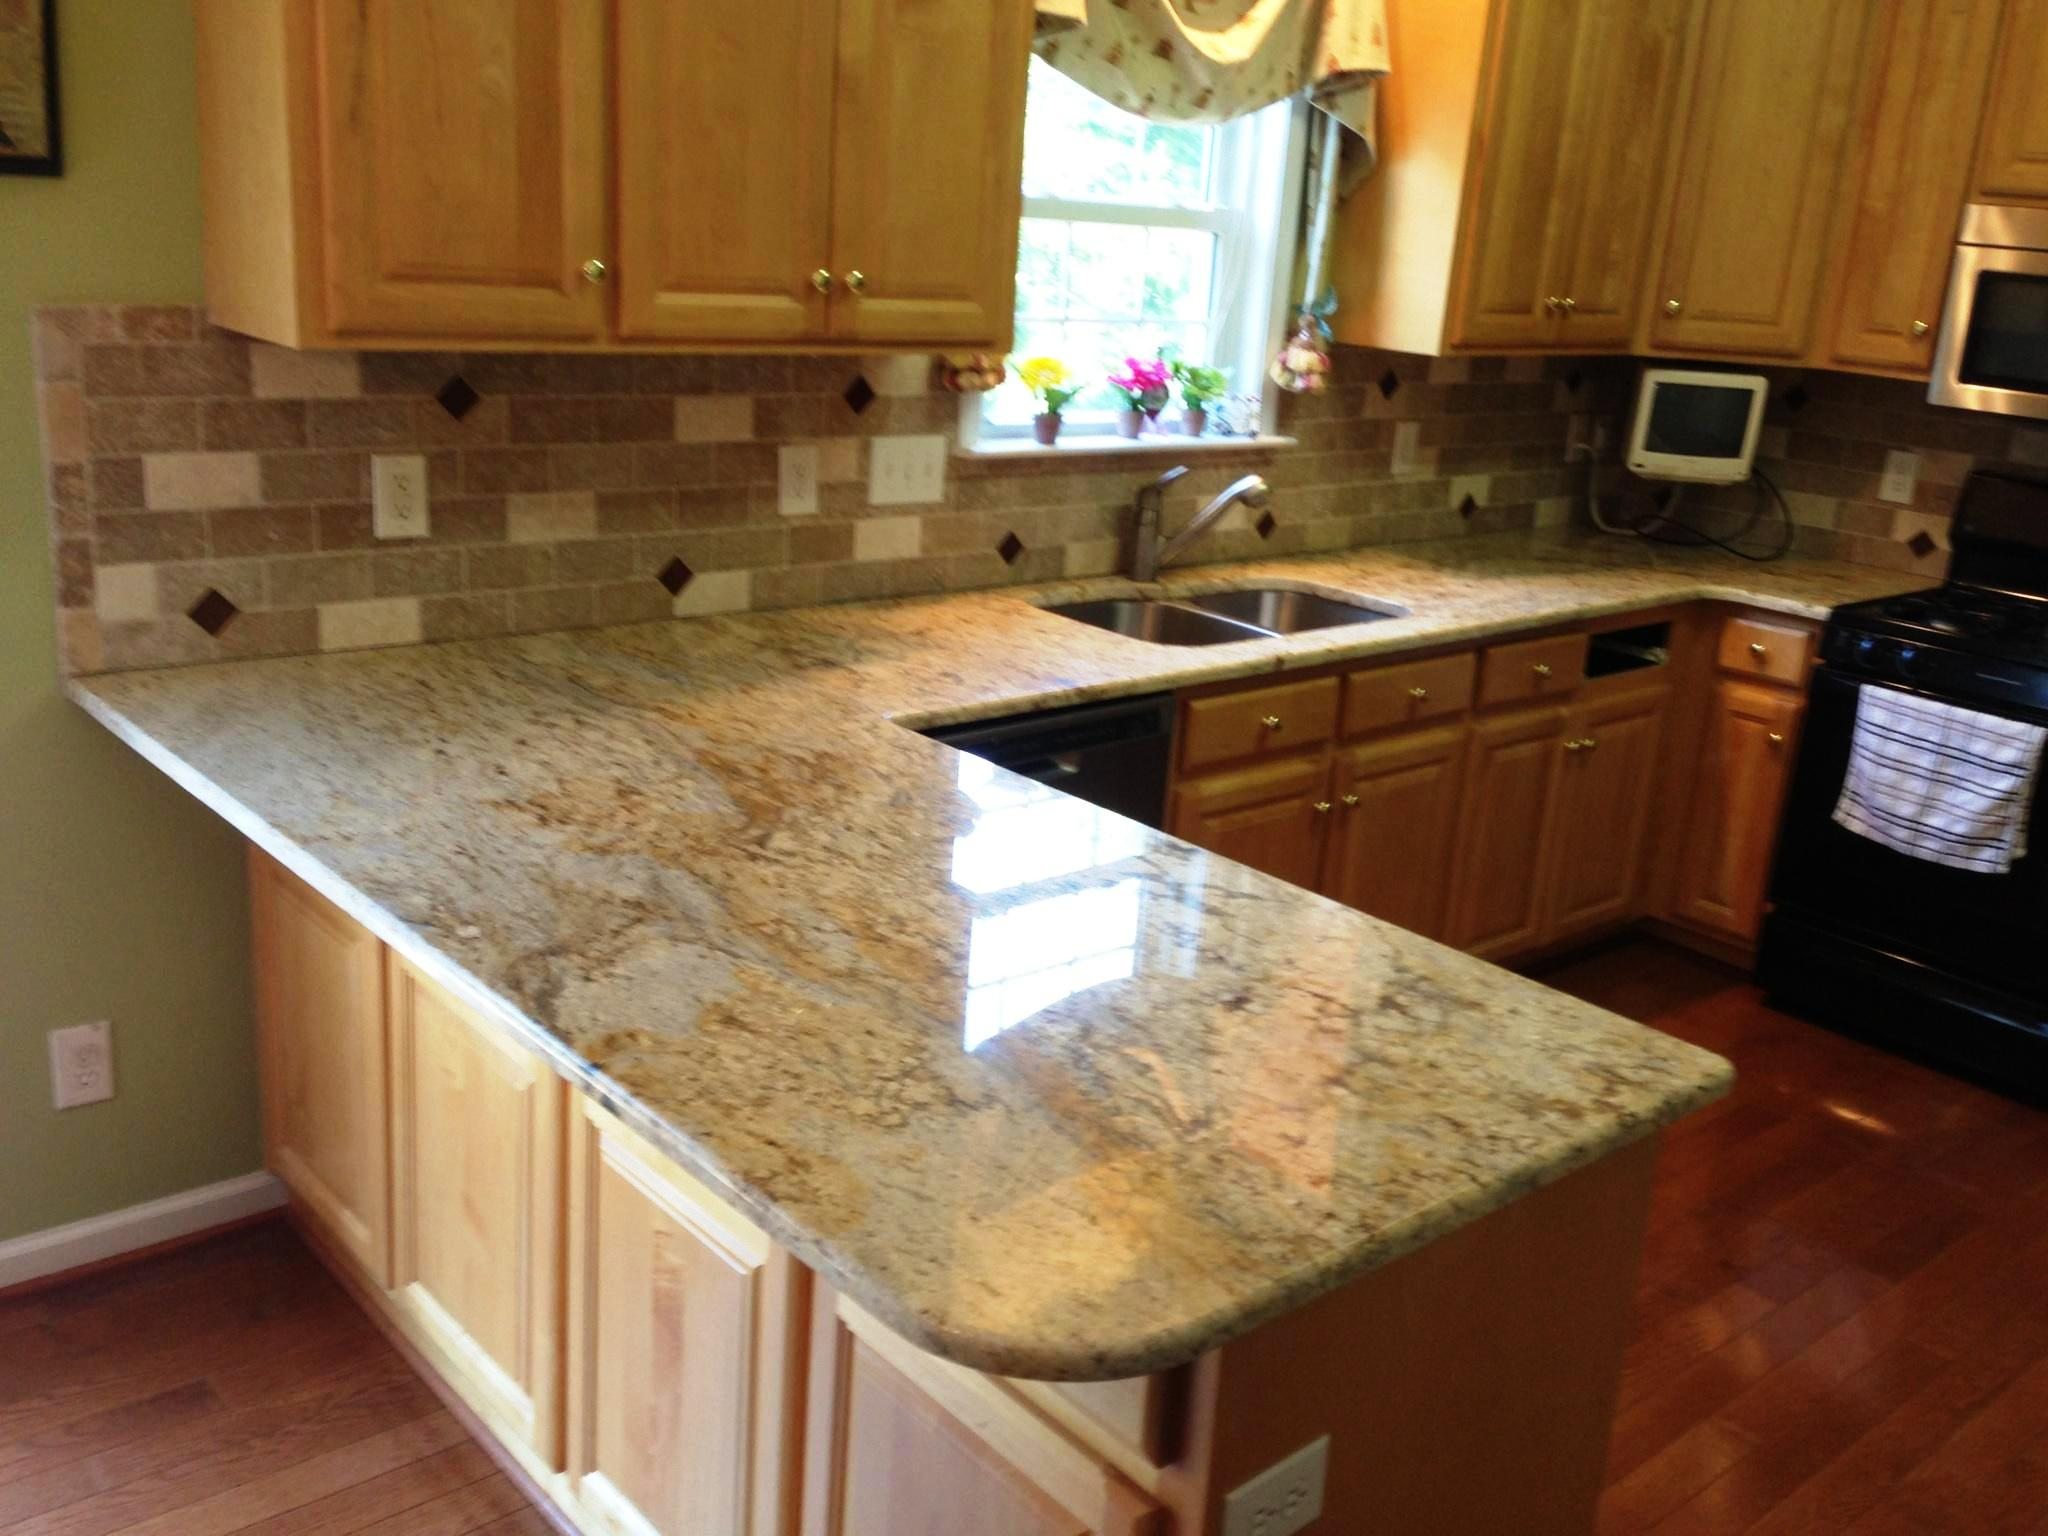 Most Popular Color For Kitchen Cabinets Colonial Gold Granite Countertops Charlotte Nc